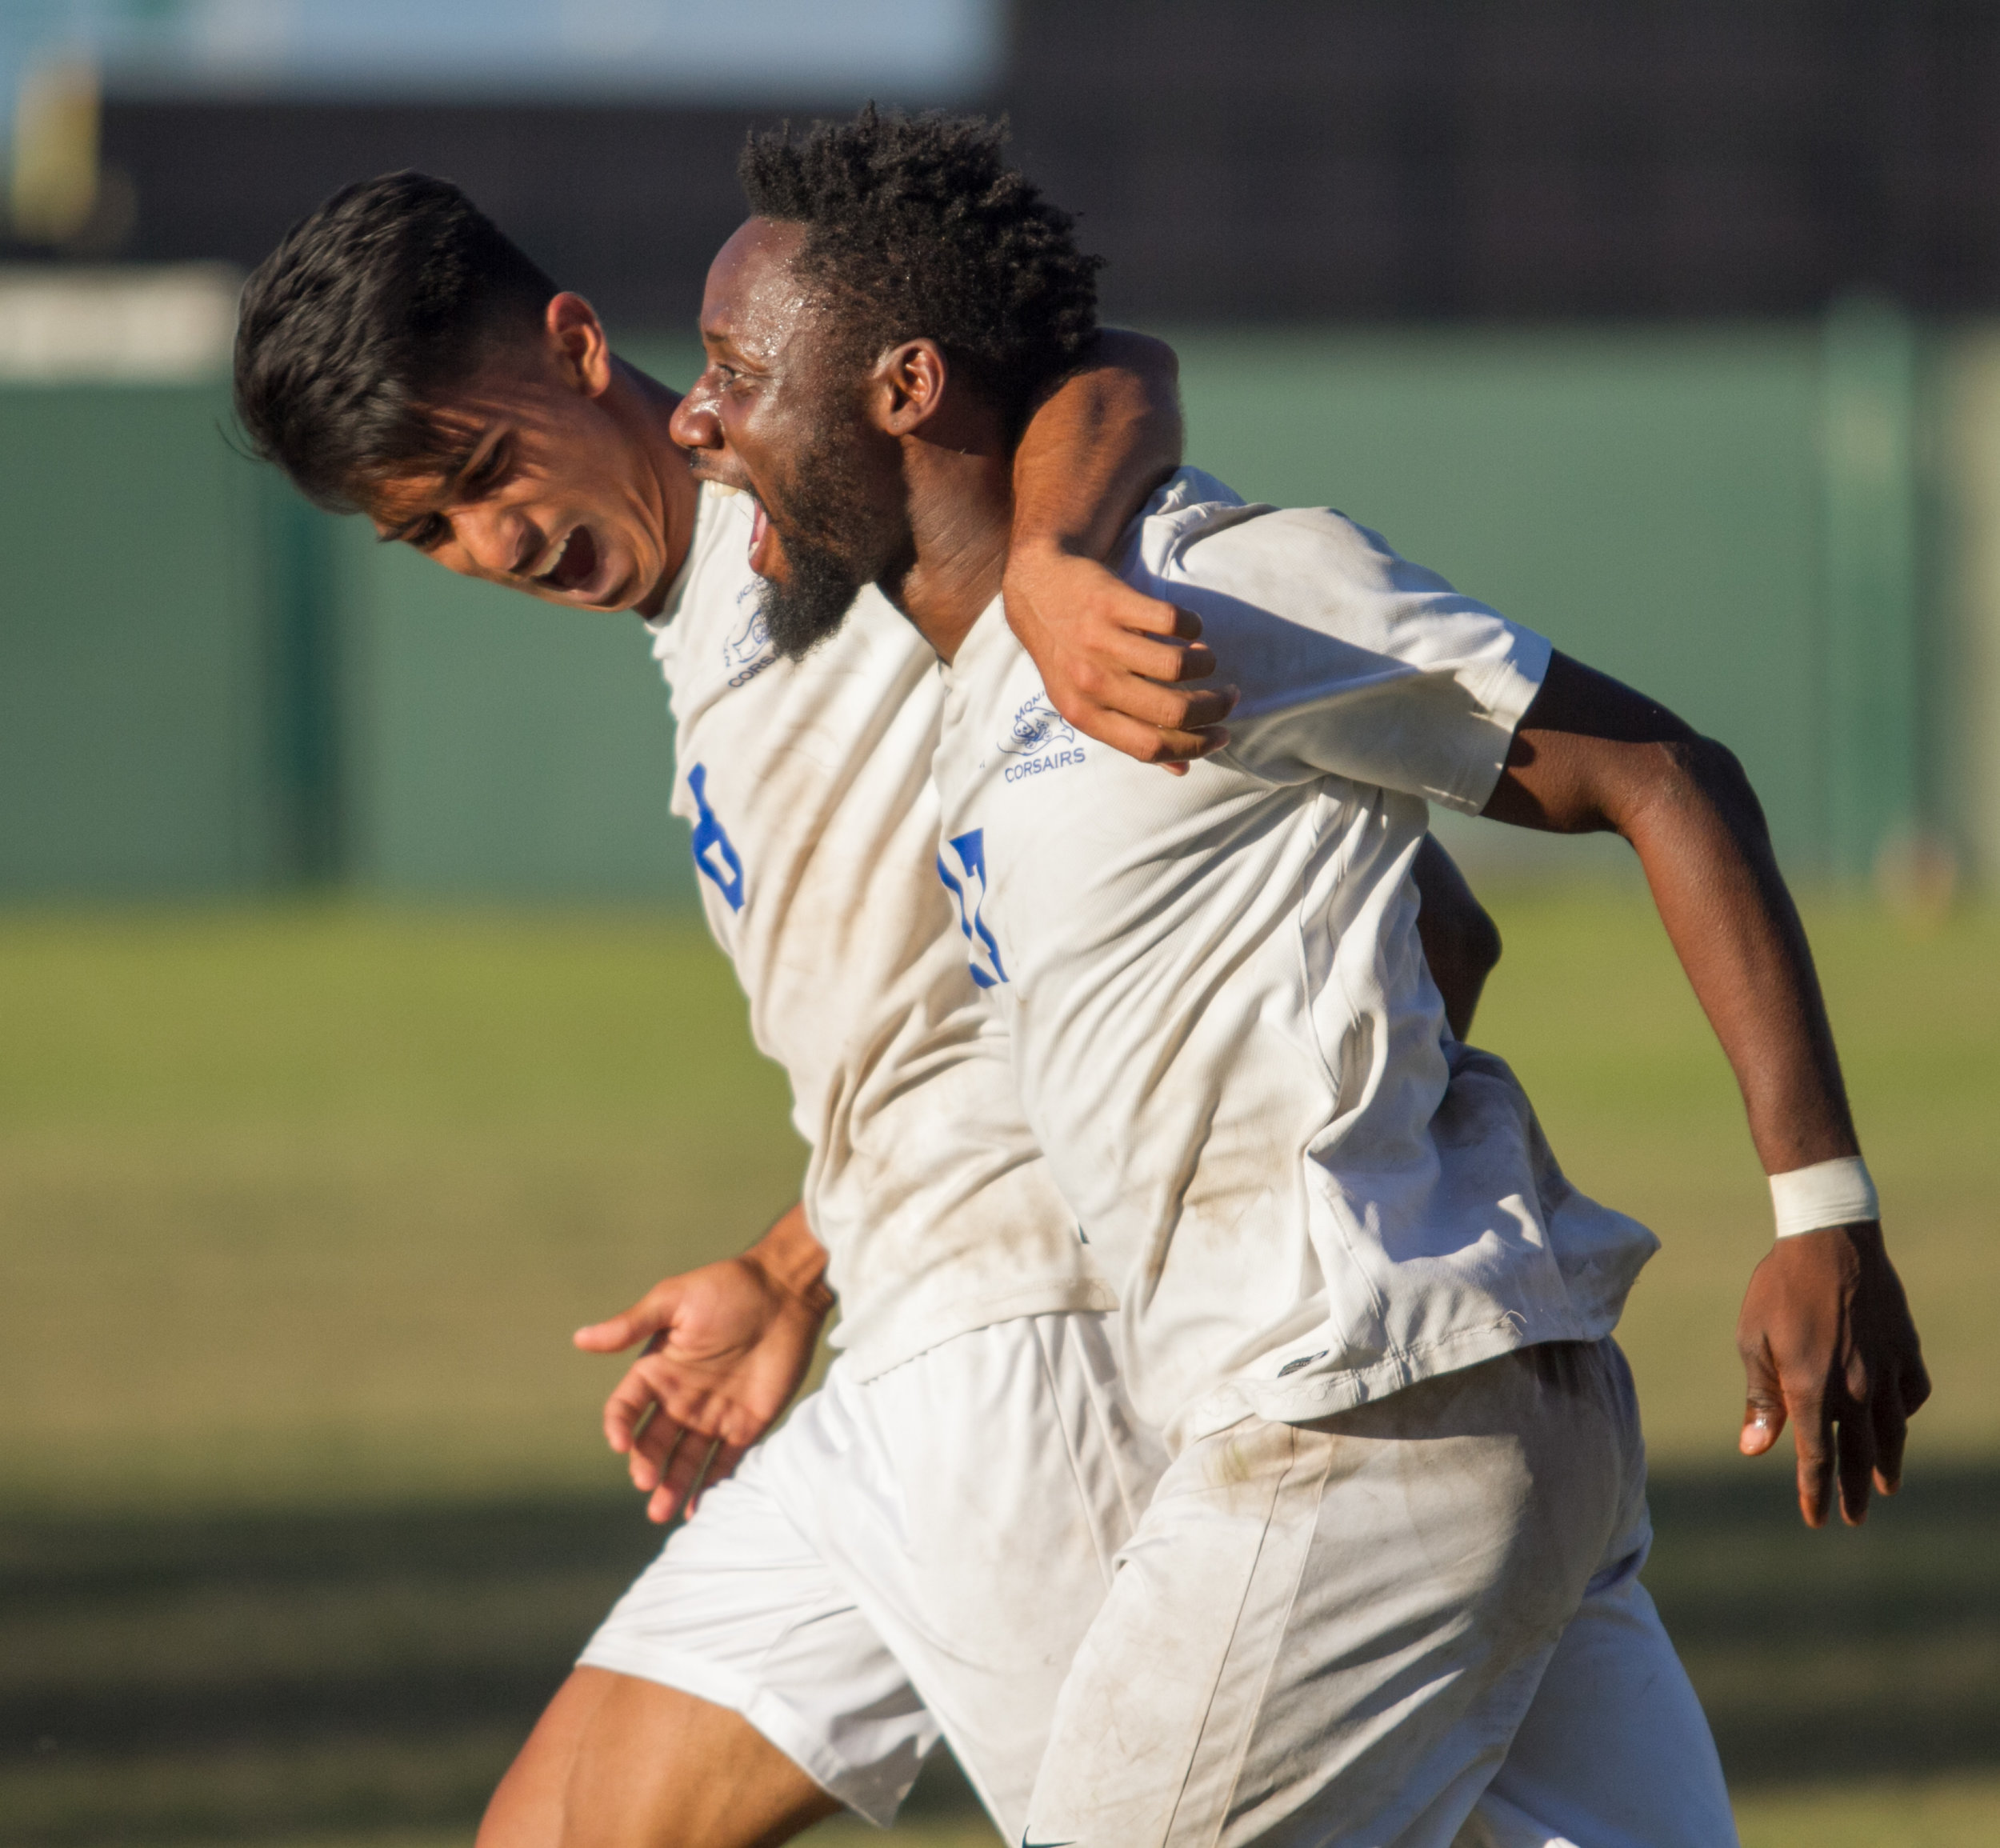 Santa Monica College Corsair Cyrille Njomo (17)(R) celebrates after scoring a goal with his teammate Chris Andy Naidu (8)(L) during the match against Cerritos College on Wednesday, November 22, 2017, at Cerritos College in Norwalk, California. The Corsairs lose 2-1. (Josue Martinez)